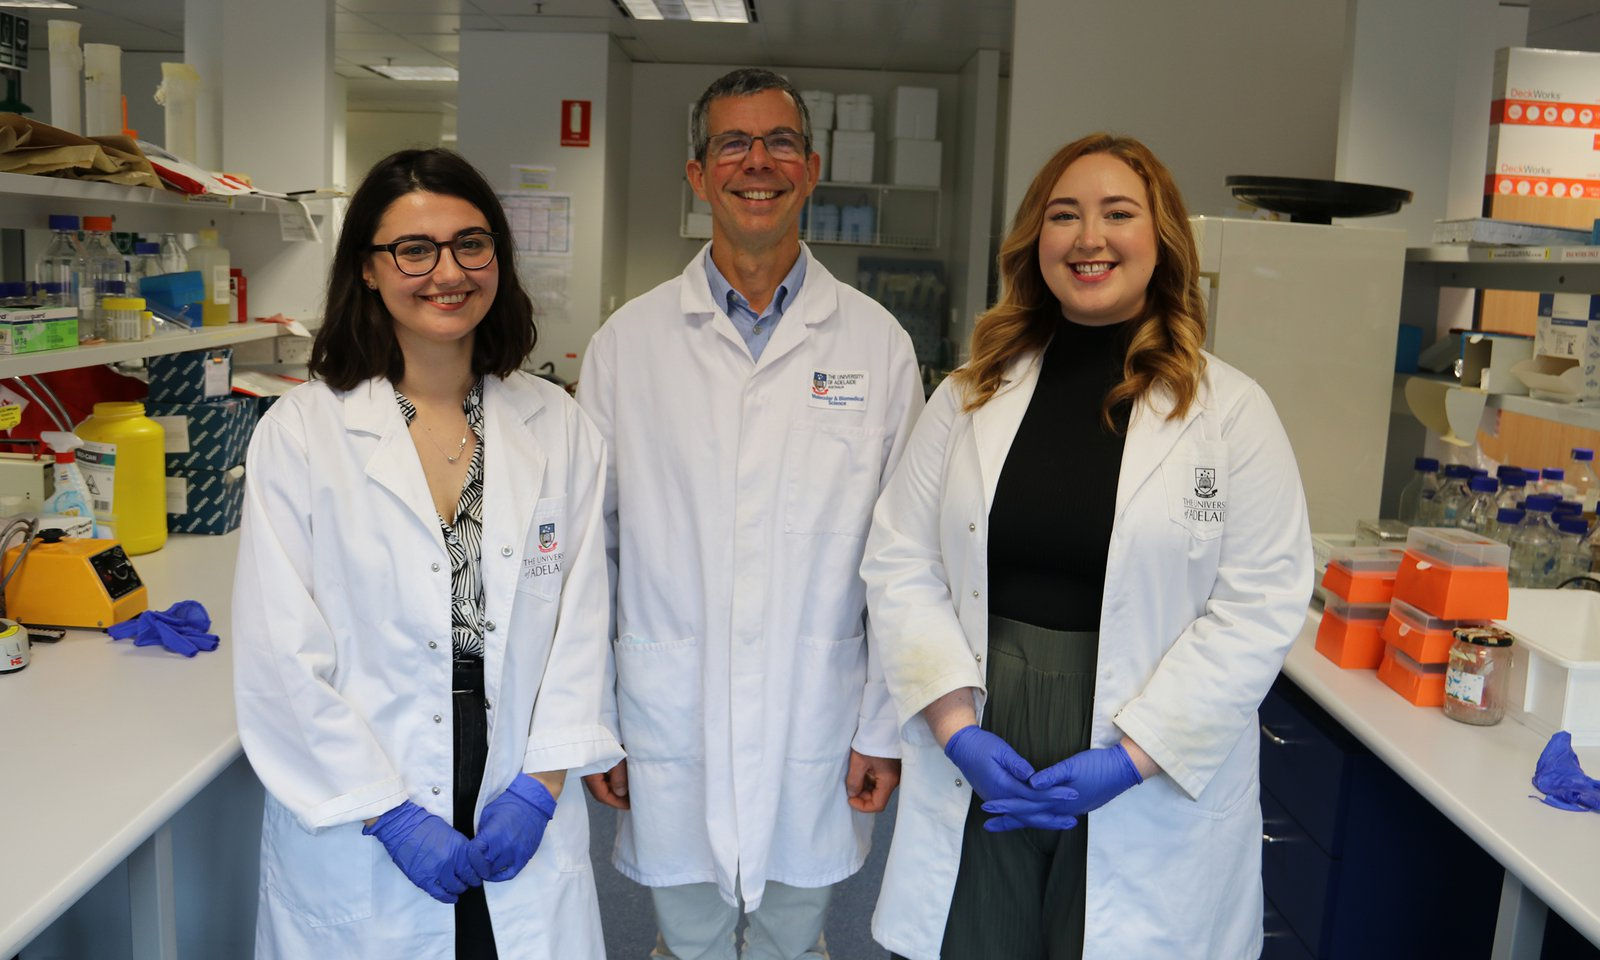 The EchidnaCSI Team is  finalist in the 2021 Department of Industry, Science, Energy and Resources Eureka Prize for Innovation in Citizen Science